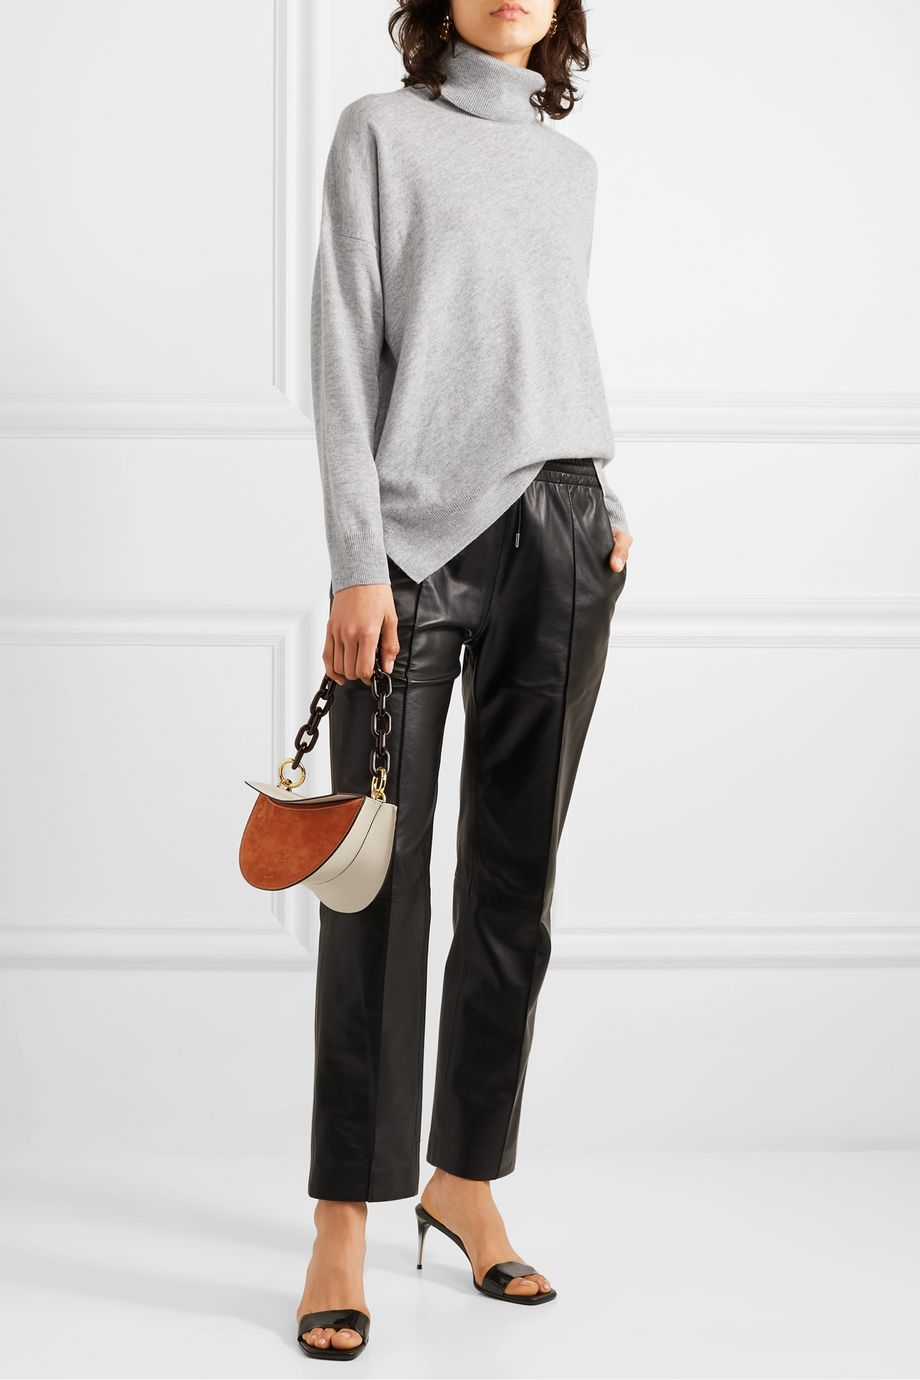 Vanessa Bruno Melanie wool and cashmere-blend turtleneck sweater